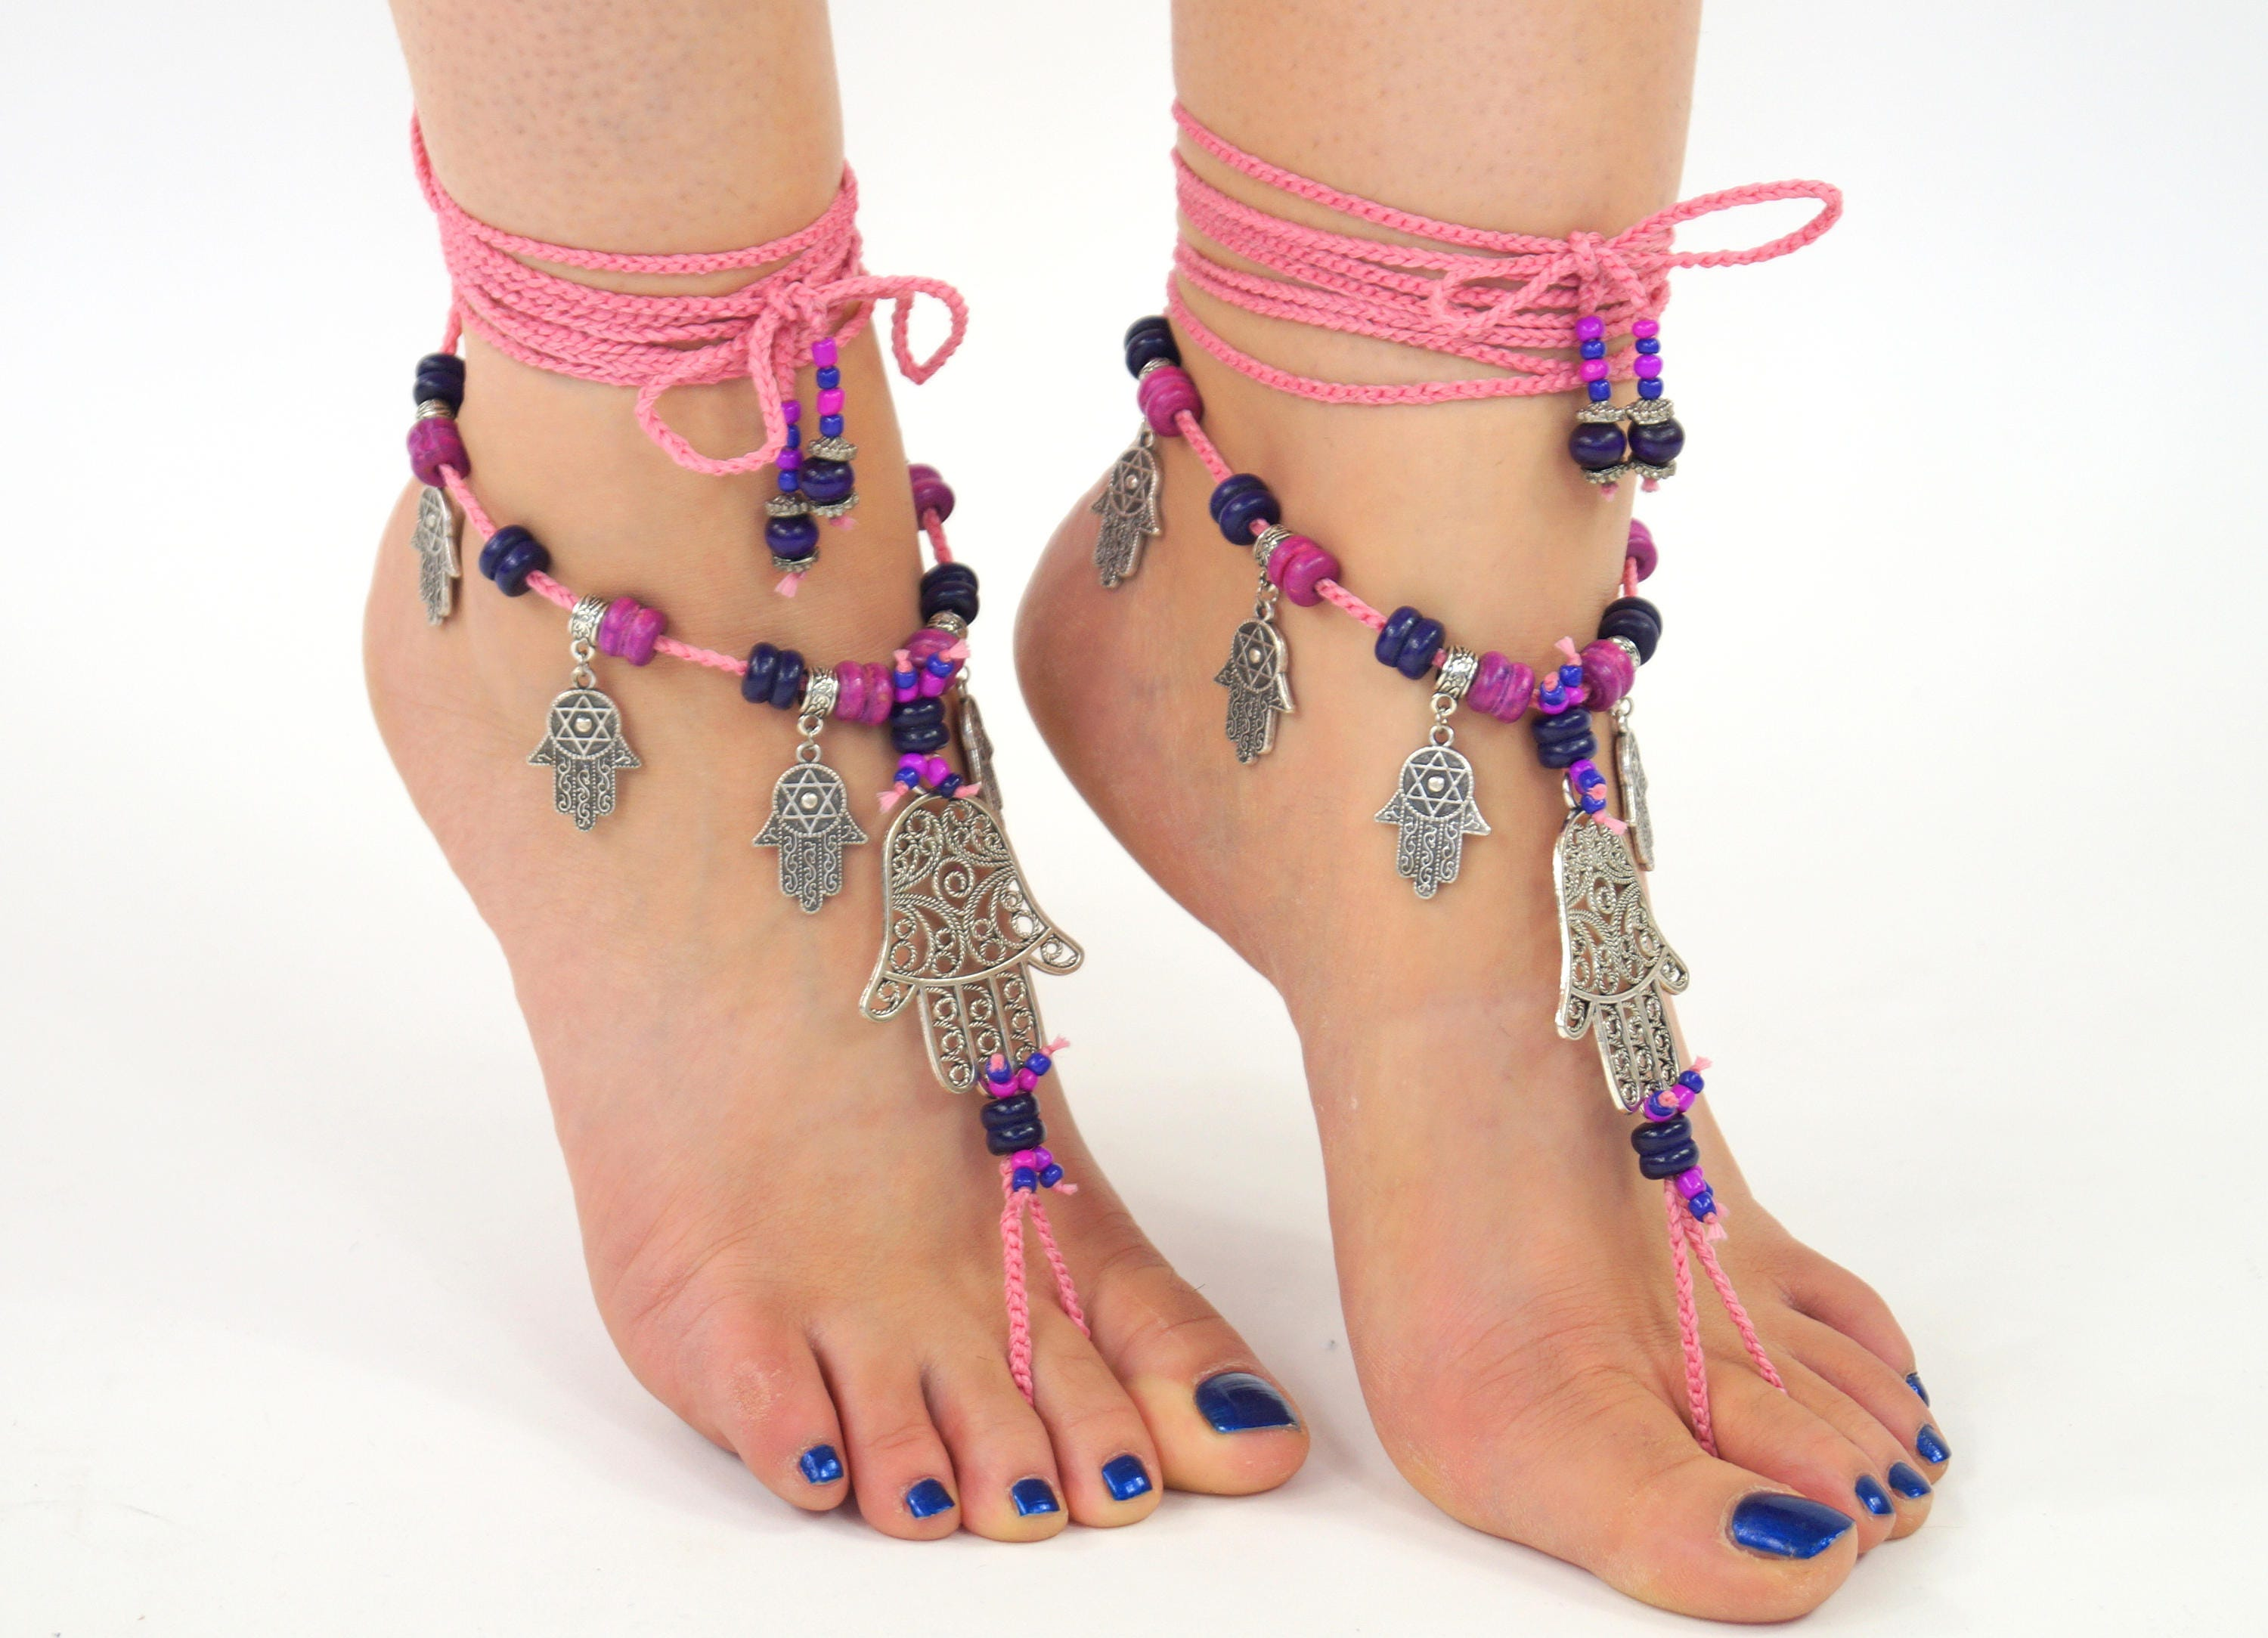 anklets gift silver boho yogi for surf bracelet product lotus beach yoga festival anklet women ankle